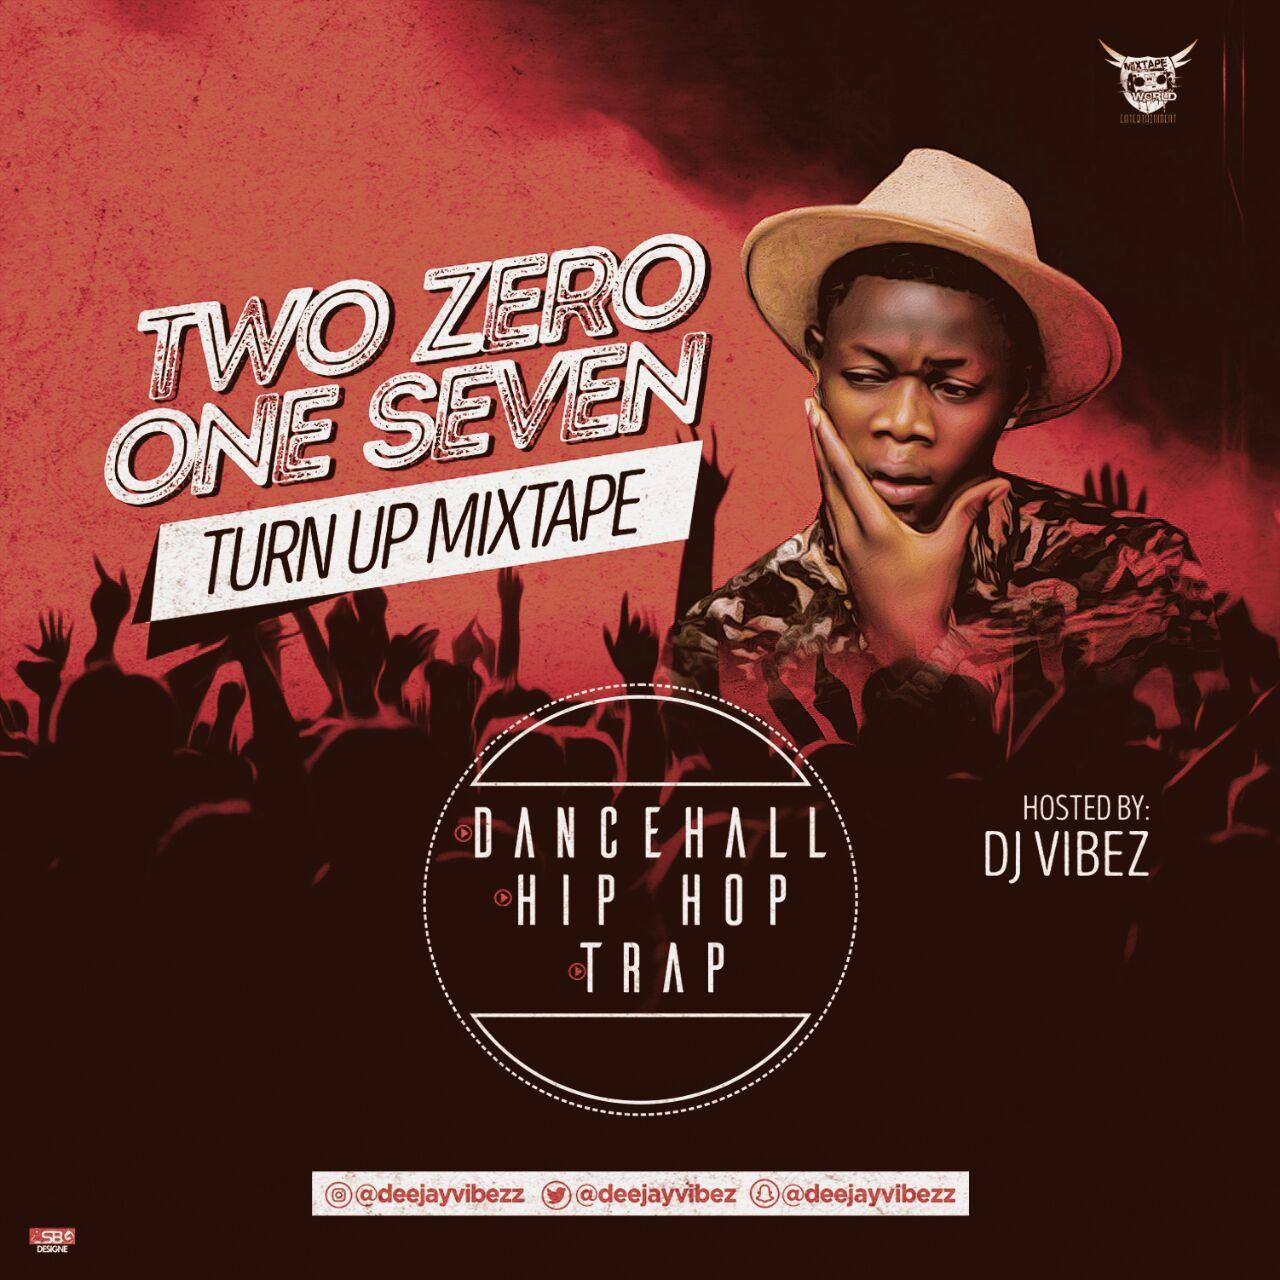 DJ Vibez - Two Zero One Seven [Mixtape]